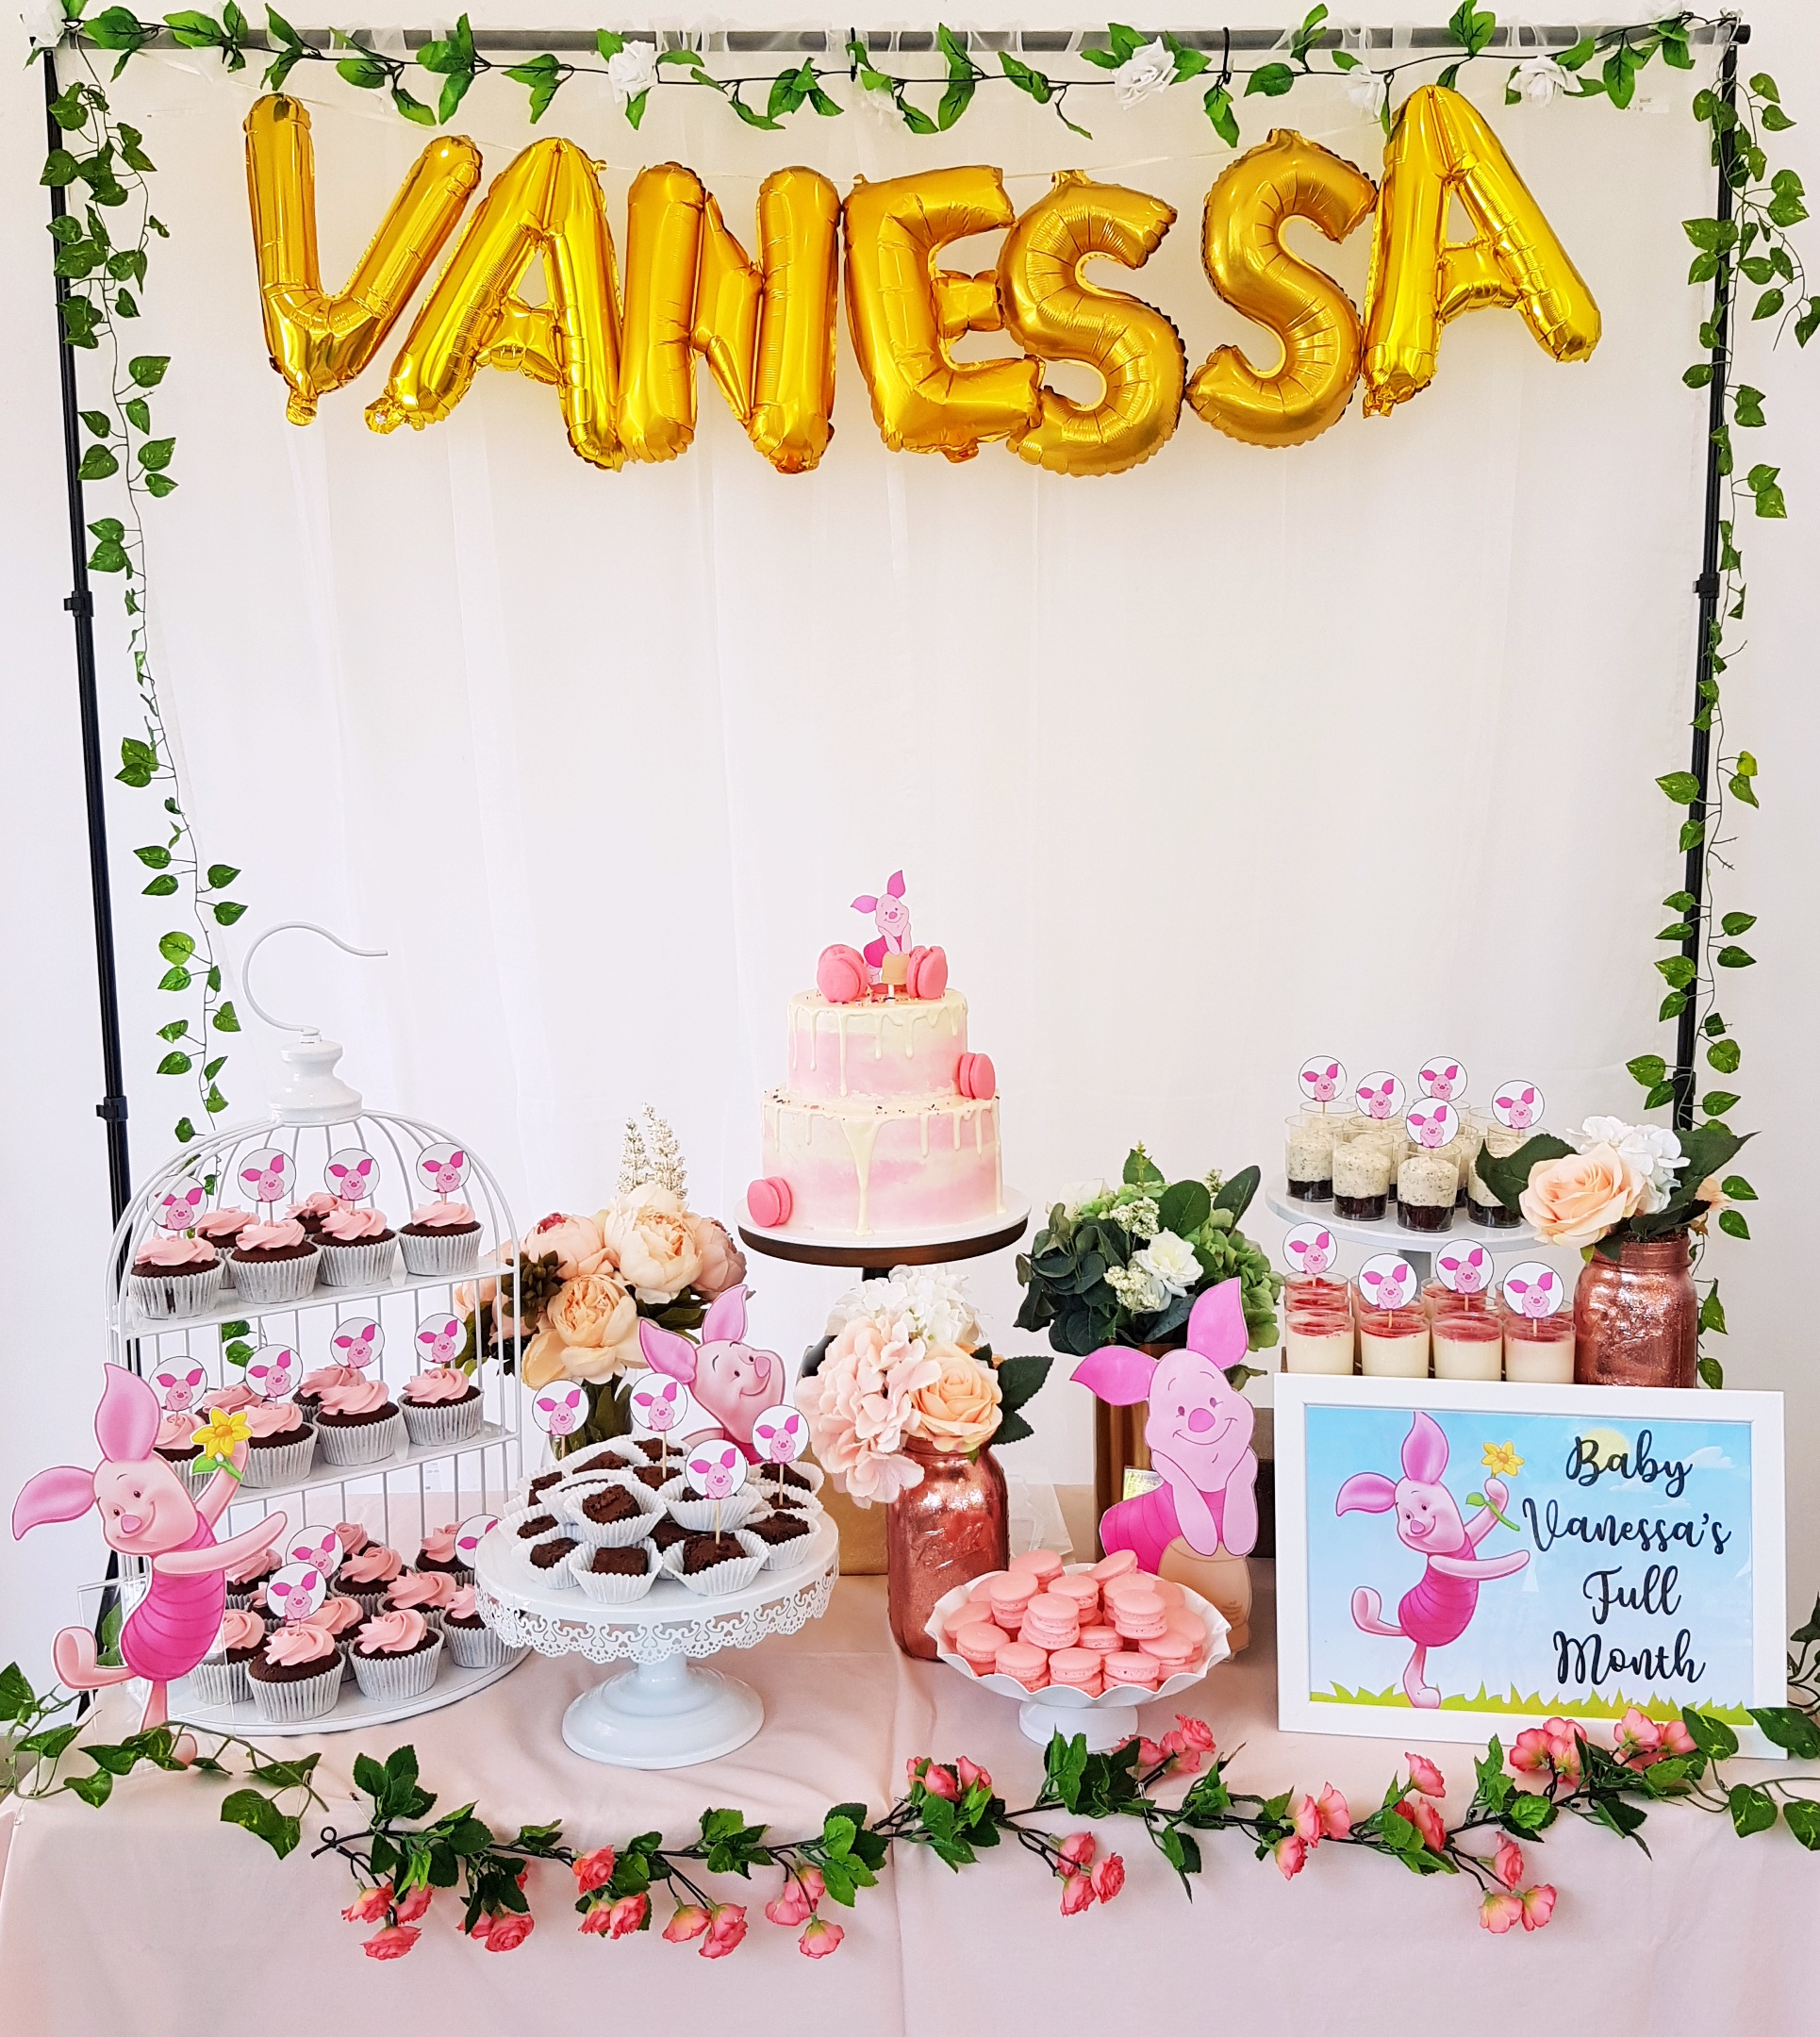 Piglet Dessert Table by The Baking Experiment